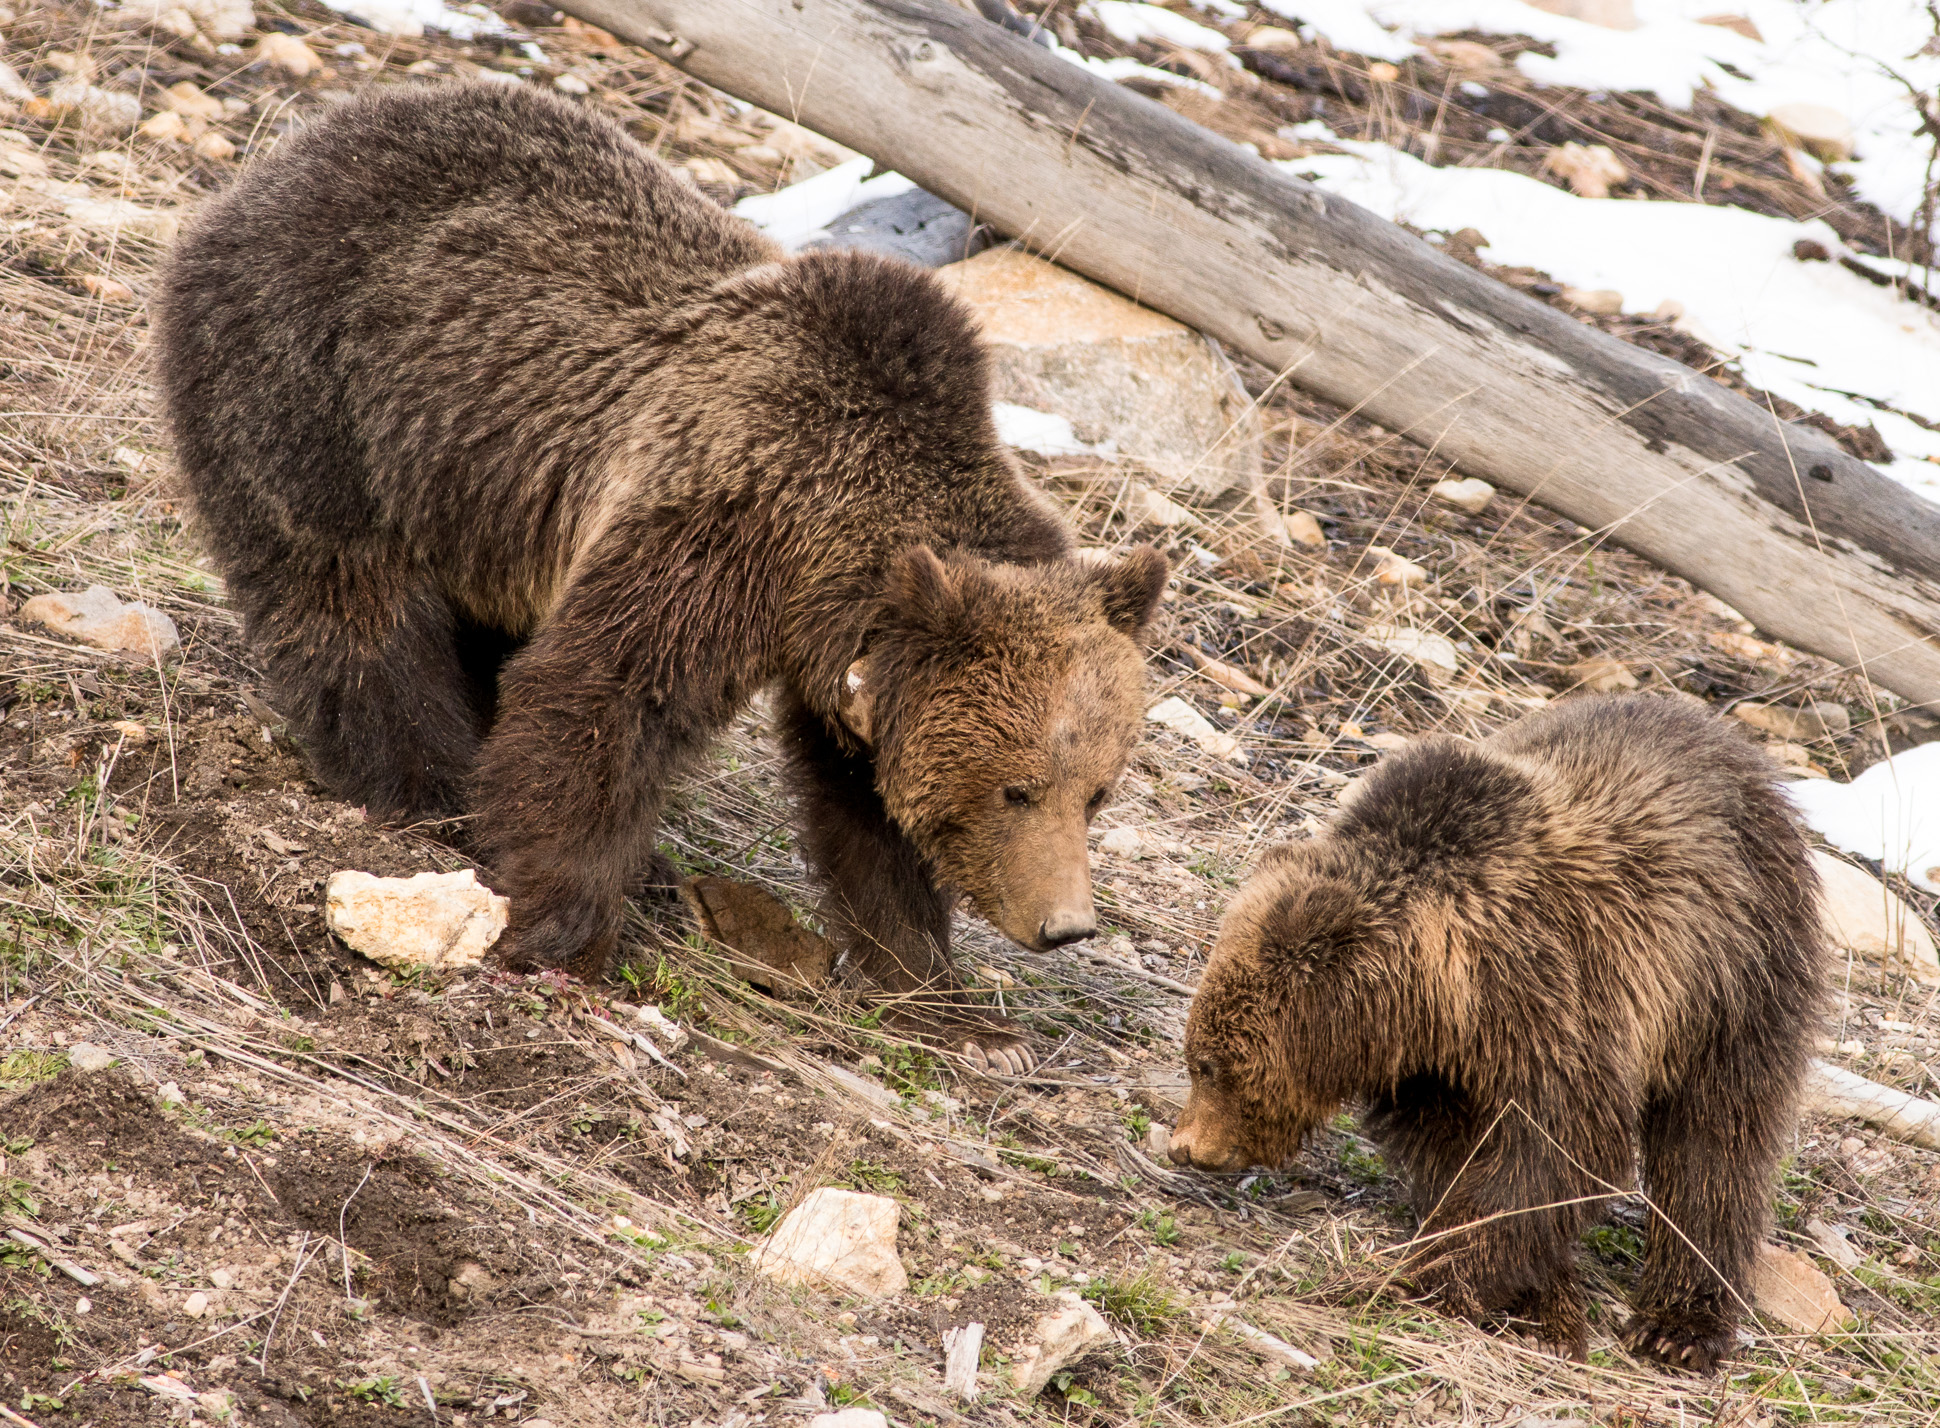 Grizzly Bear and cub Valley Girl near Roaring Mountain Yellowstone National Park WY-06024